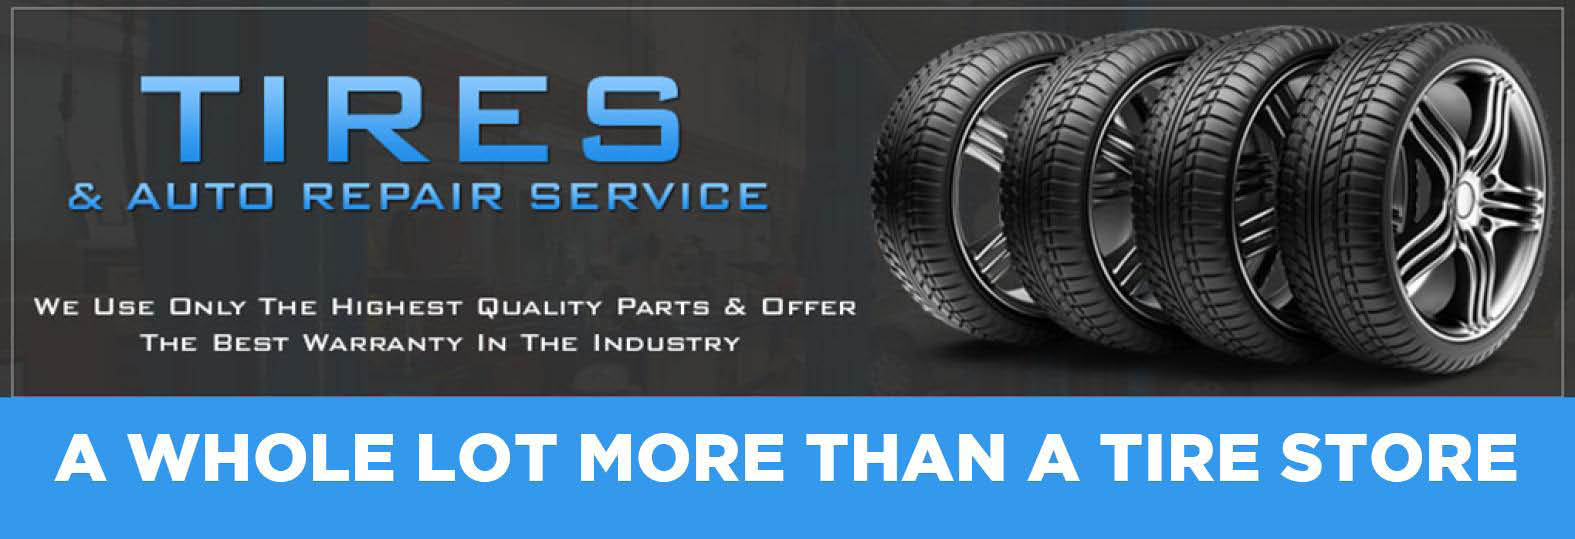 Brentwood Tire Company & Auto Repair Service banner